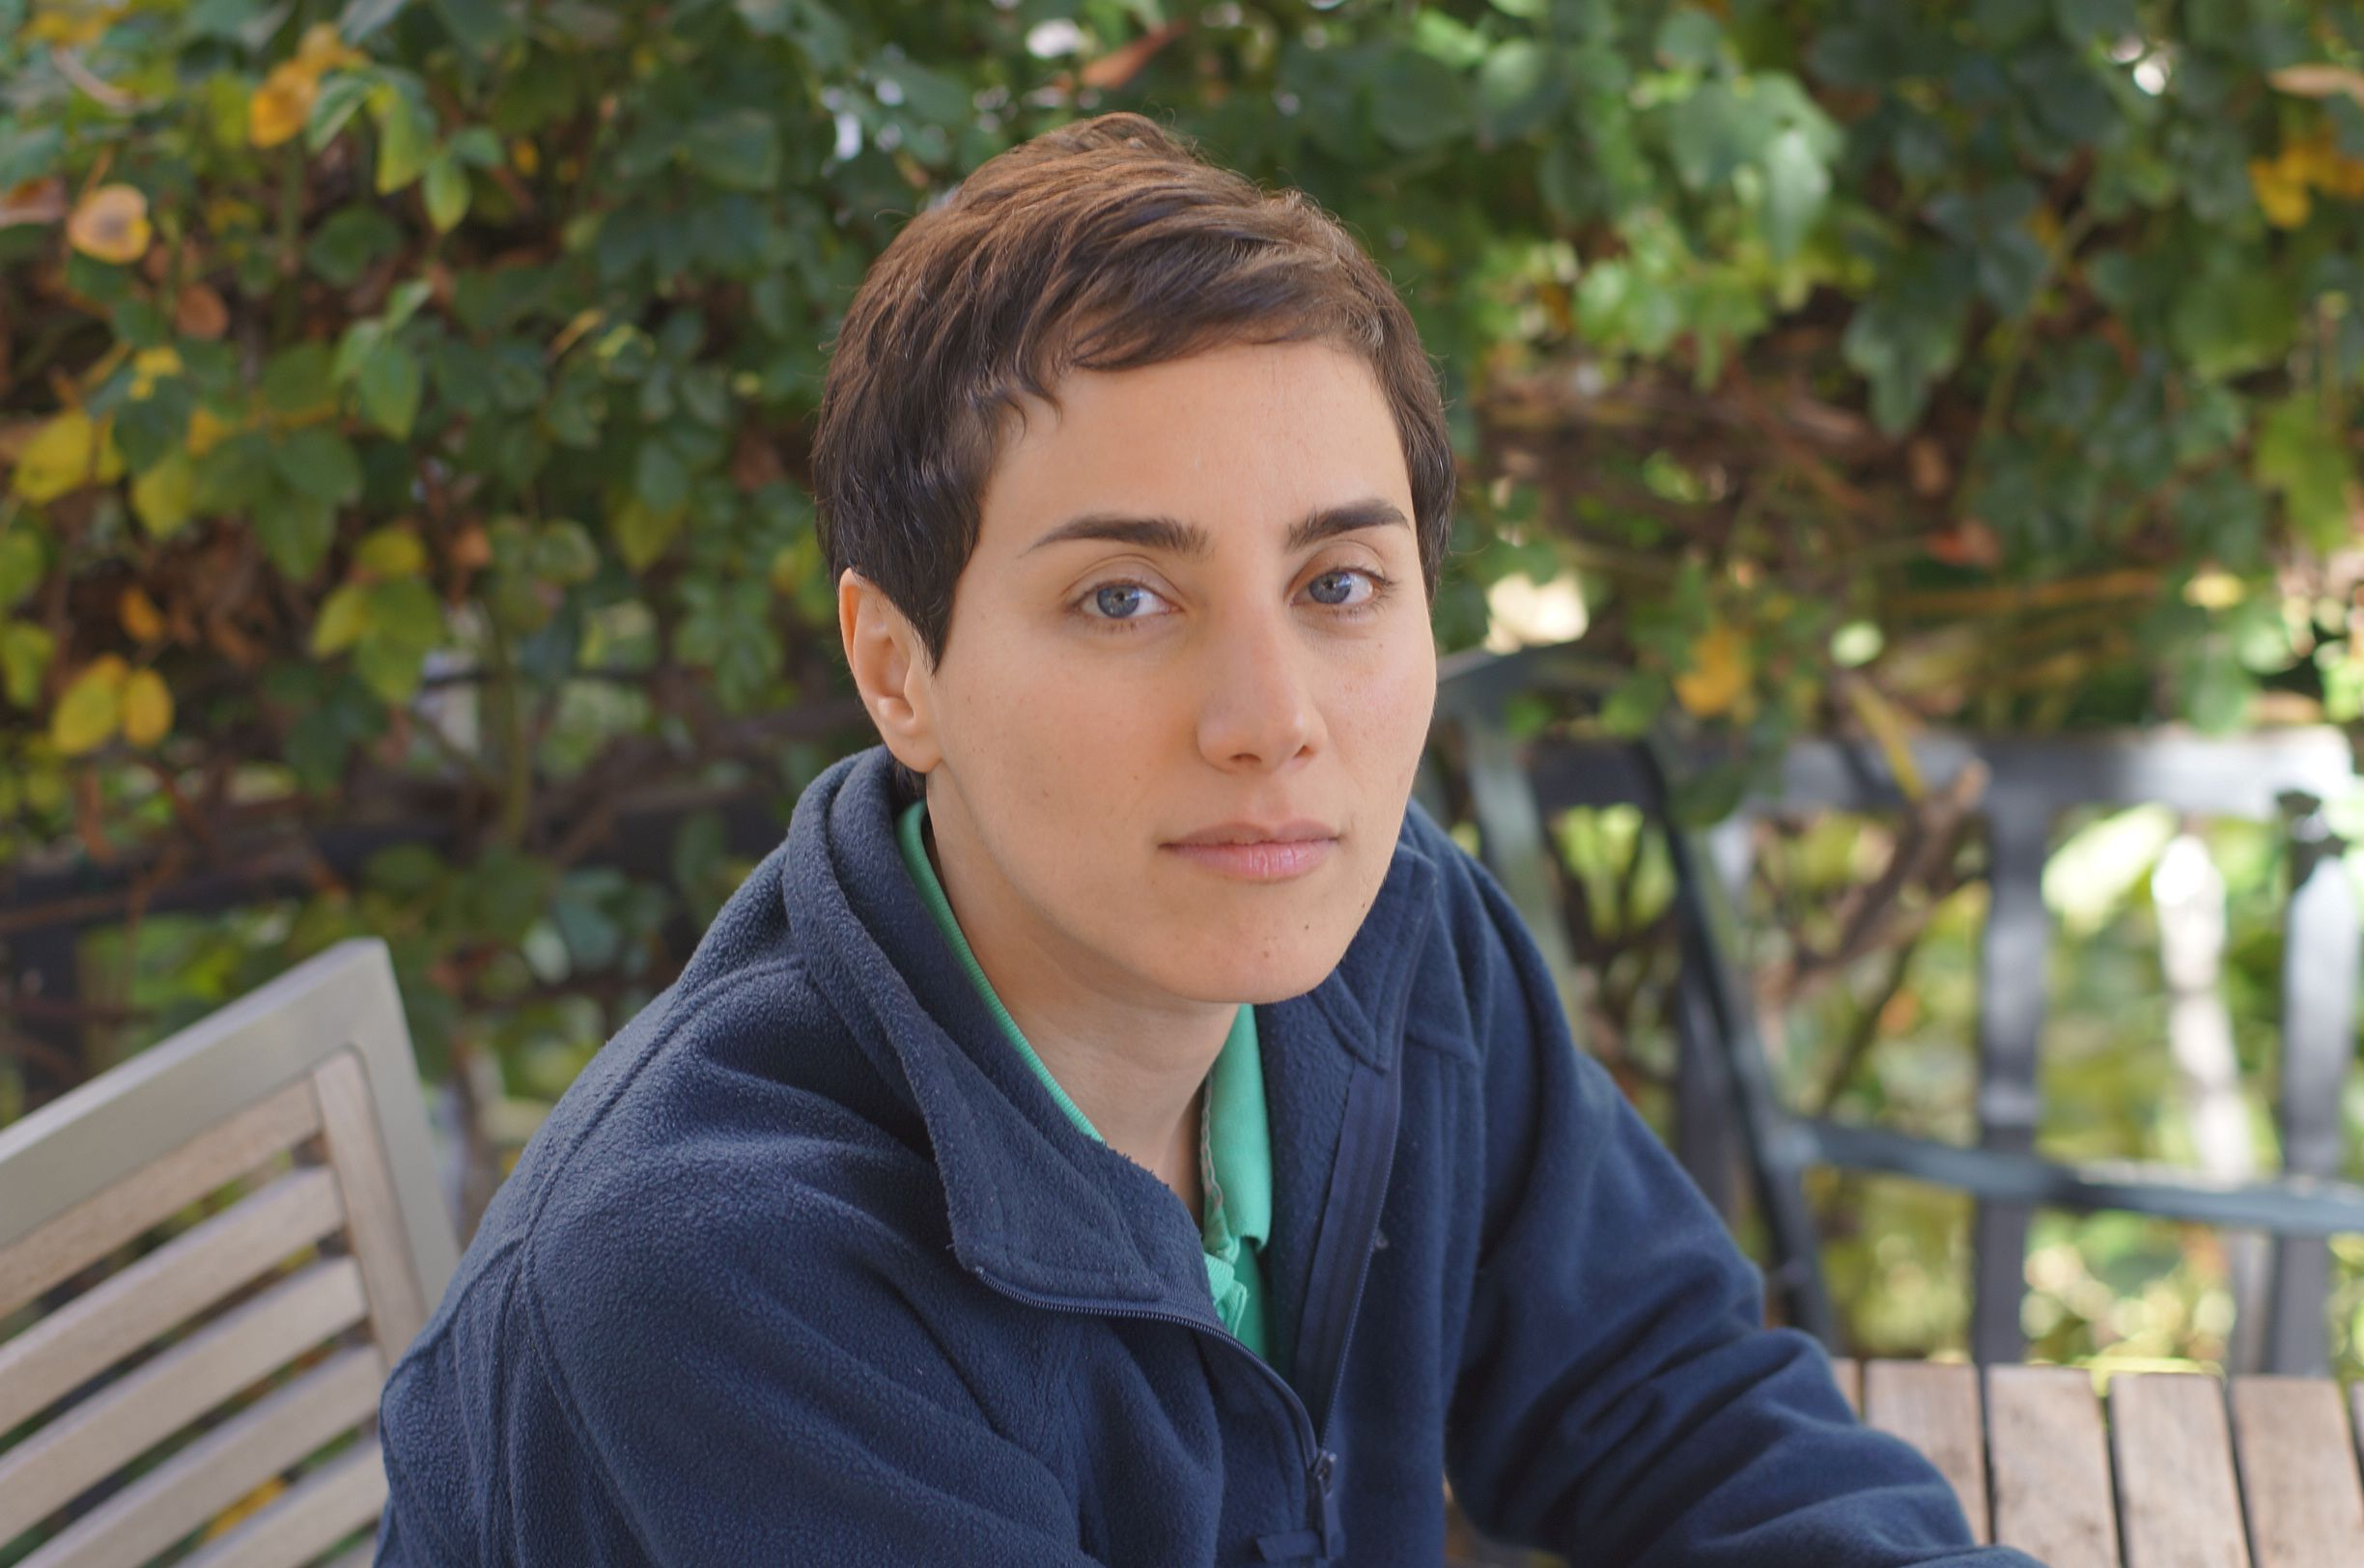 Iranian math genius Mirzakhani passes away